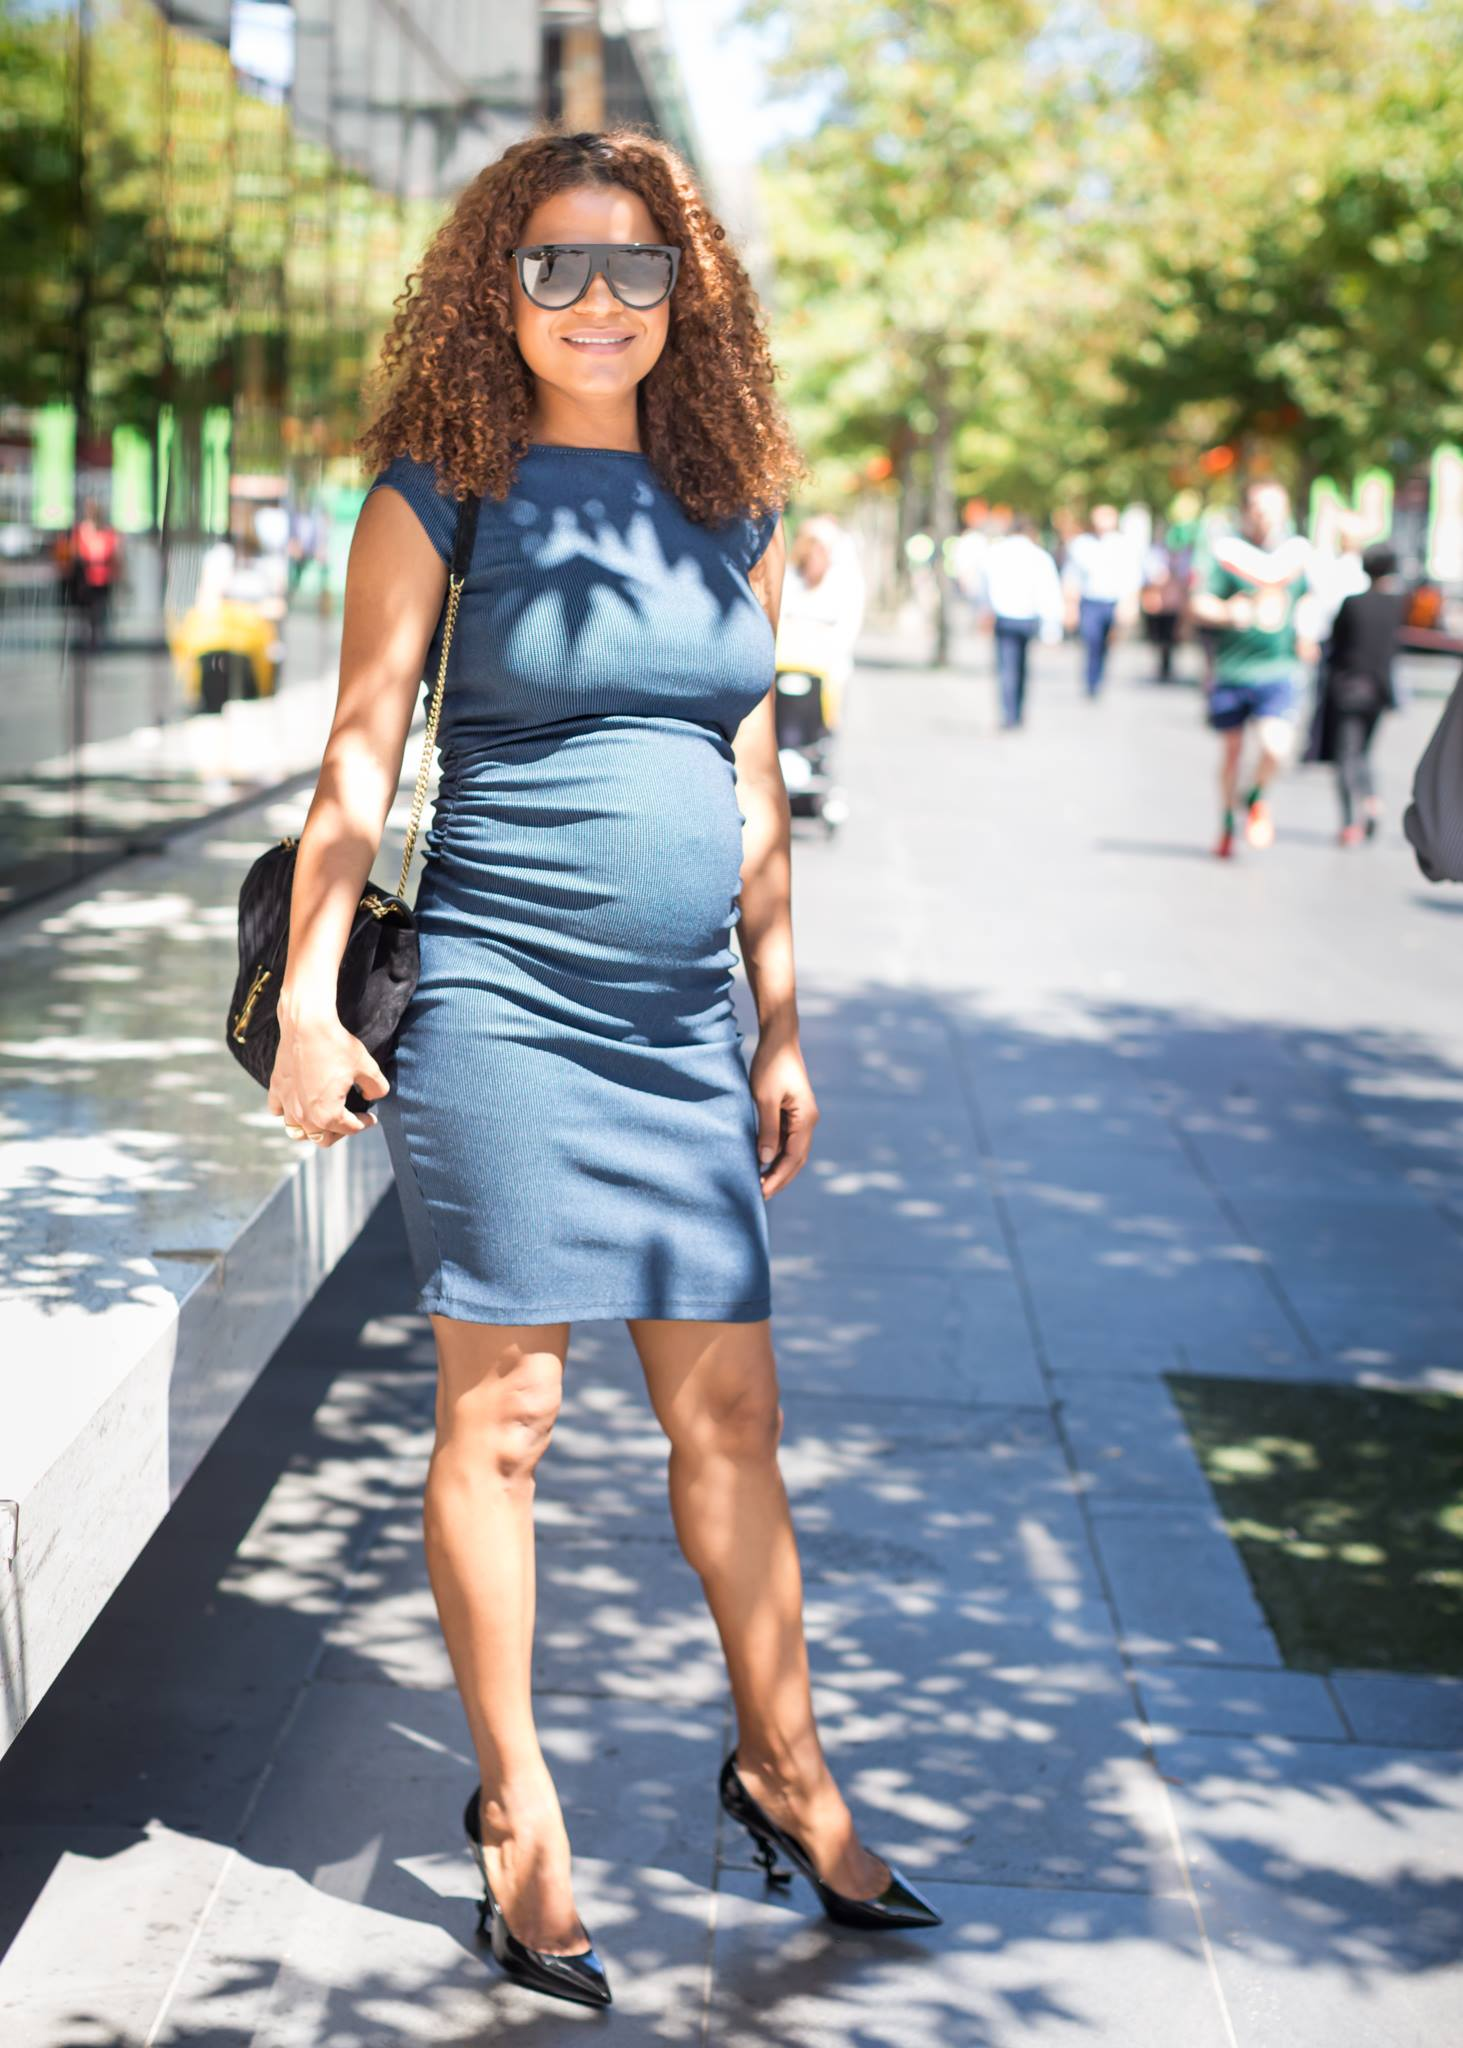 Victoria Latu, Talking Shop, Pregnant dress hot, Maternity style